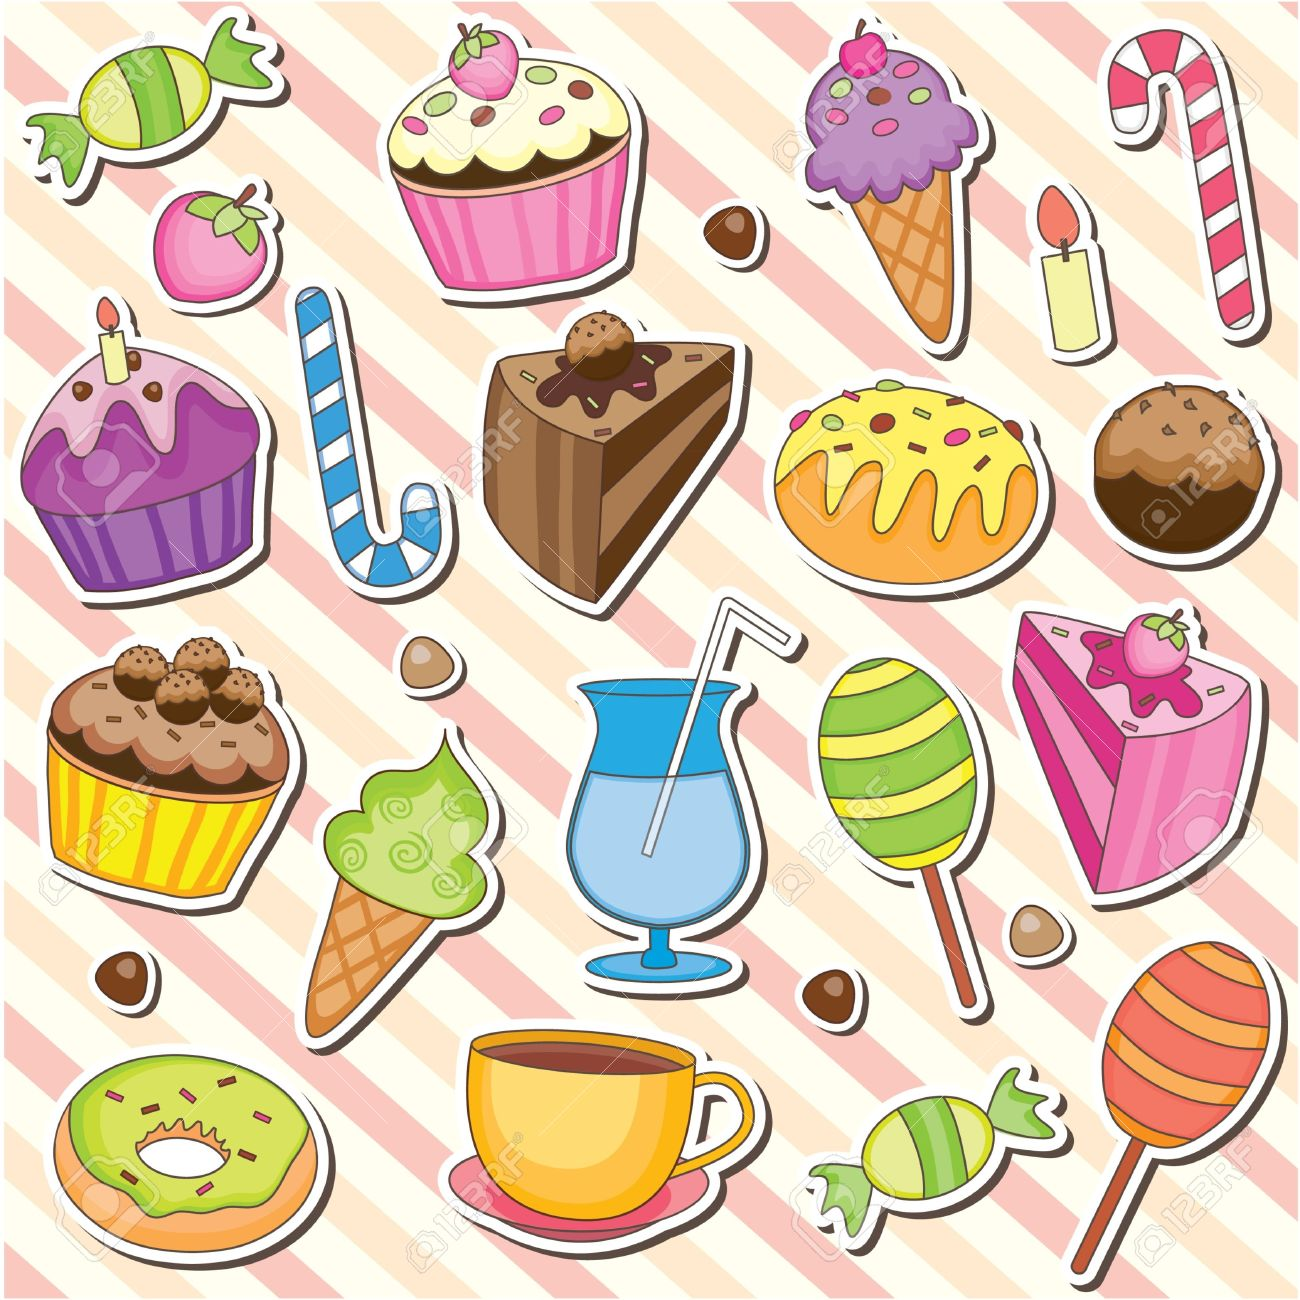 Dessert clipart #2, Download drawings